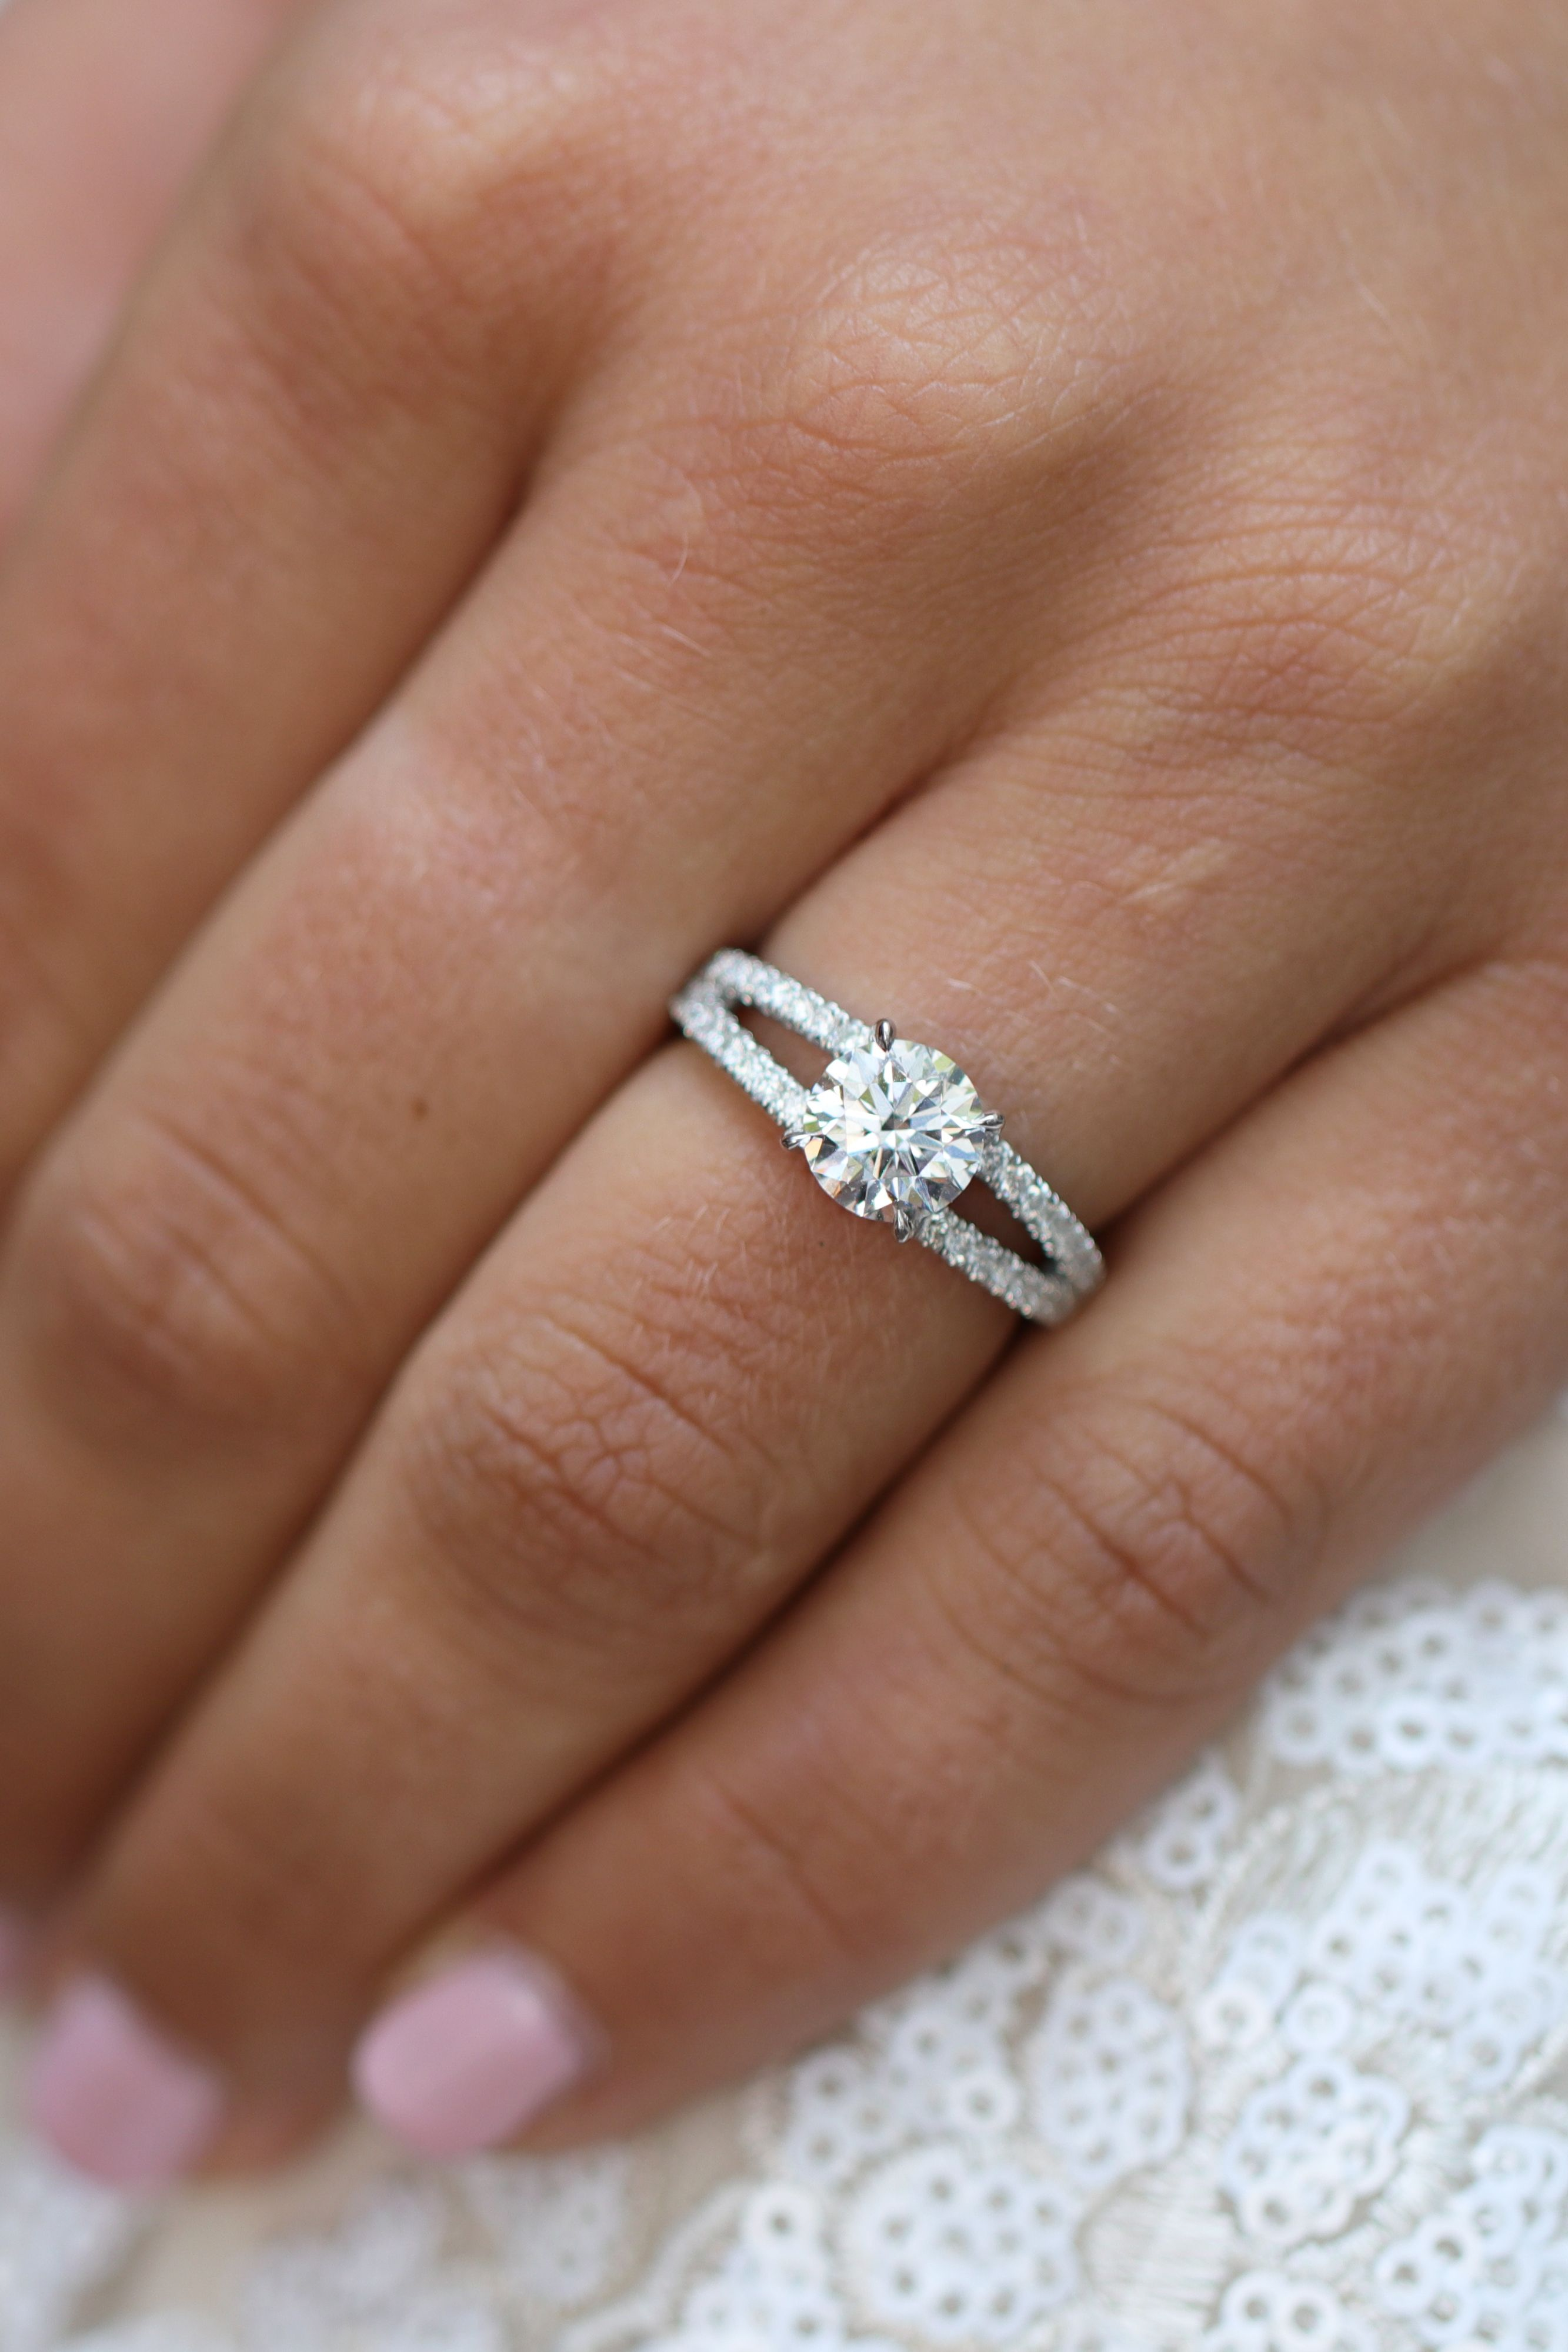 Should You Chooose A Cultured Diamond Cultured Diamonds Dream Engagement Rings Shop Engagement Rings